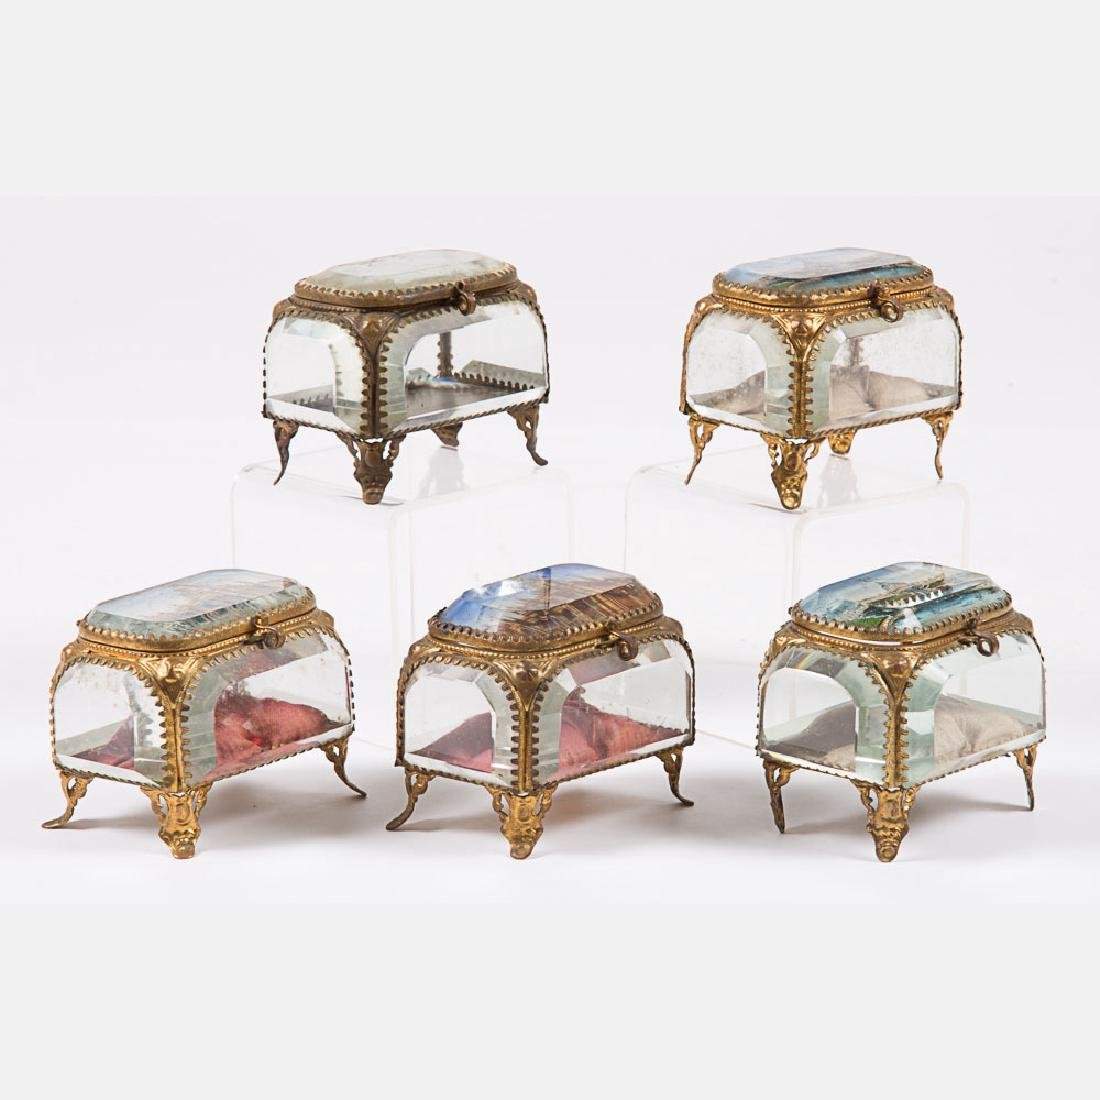 A Group of Five Glass and Brass Jewelry Boxes from the